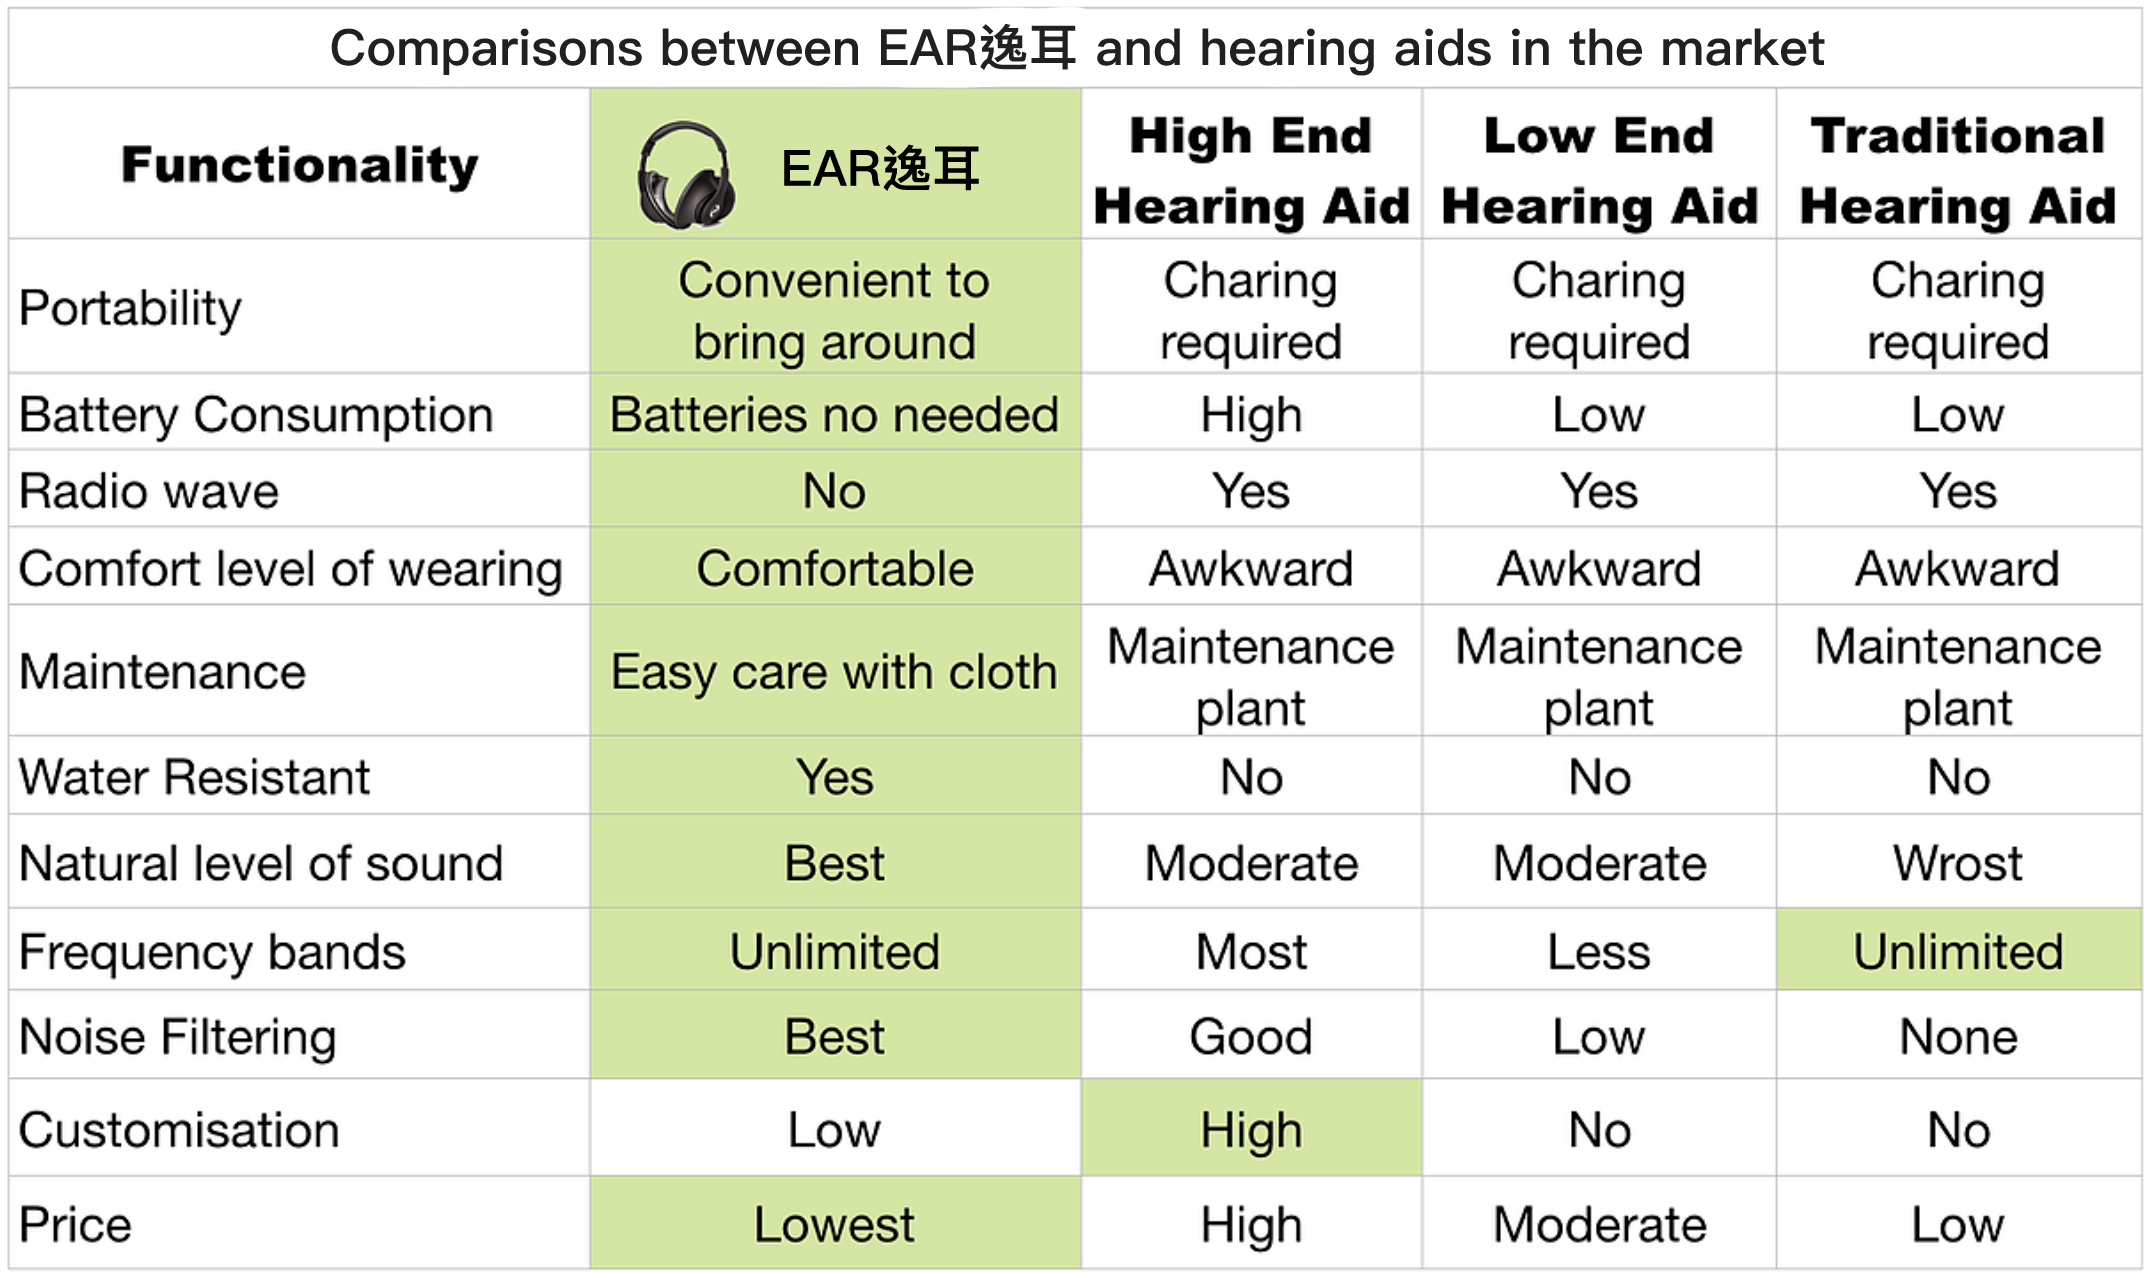 Comparisons between EAR逸耳 and hearing aids in the market.png